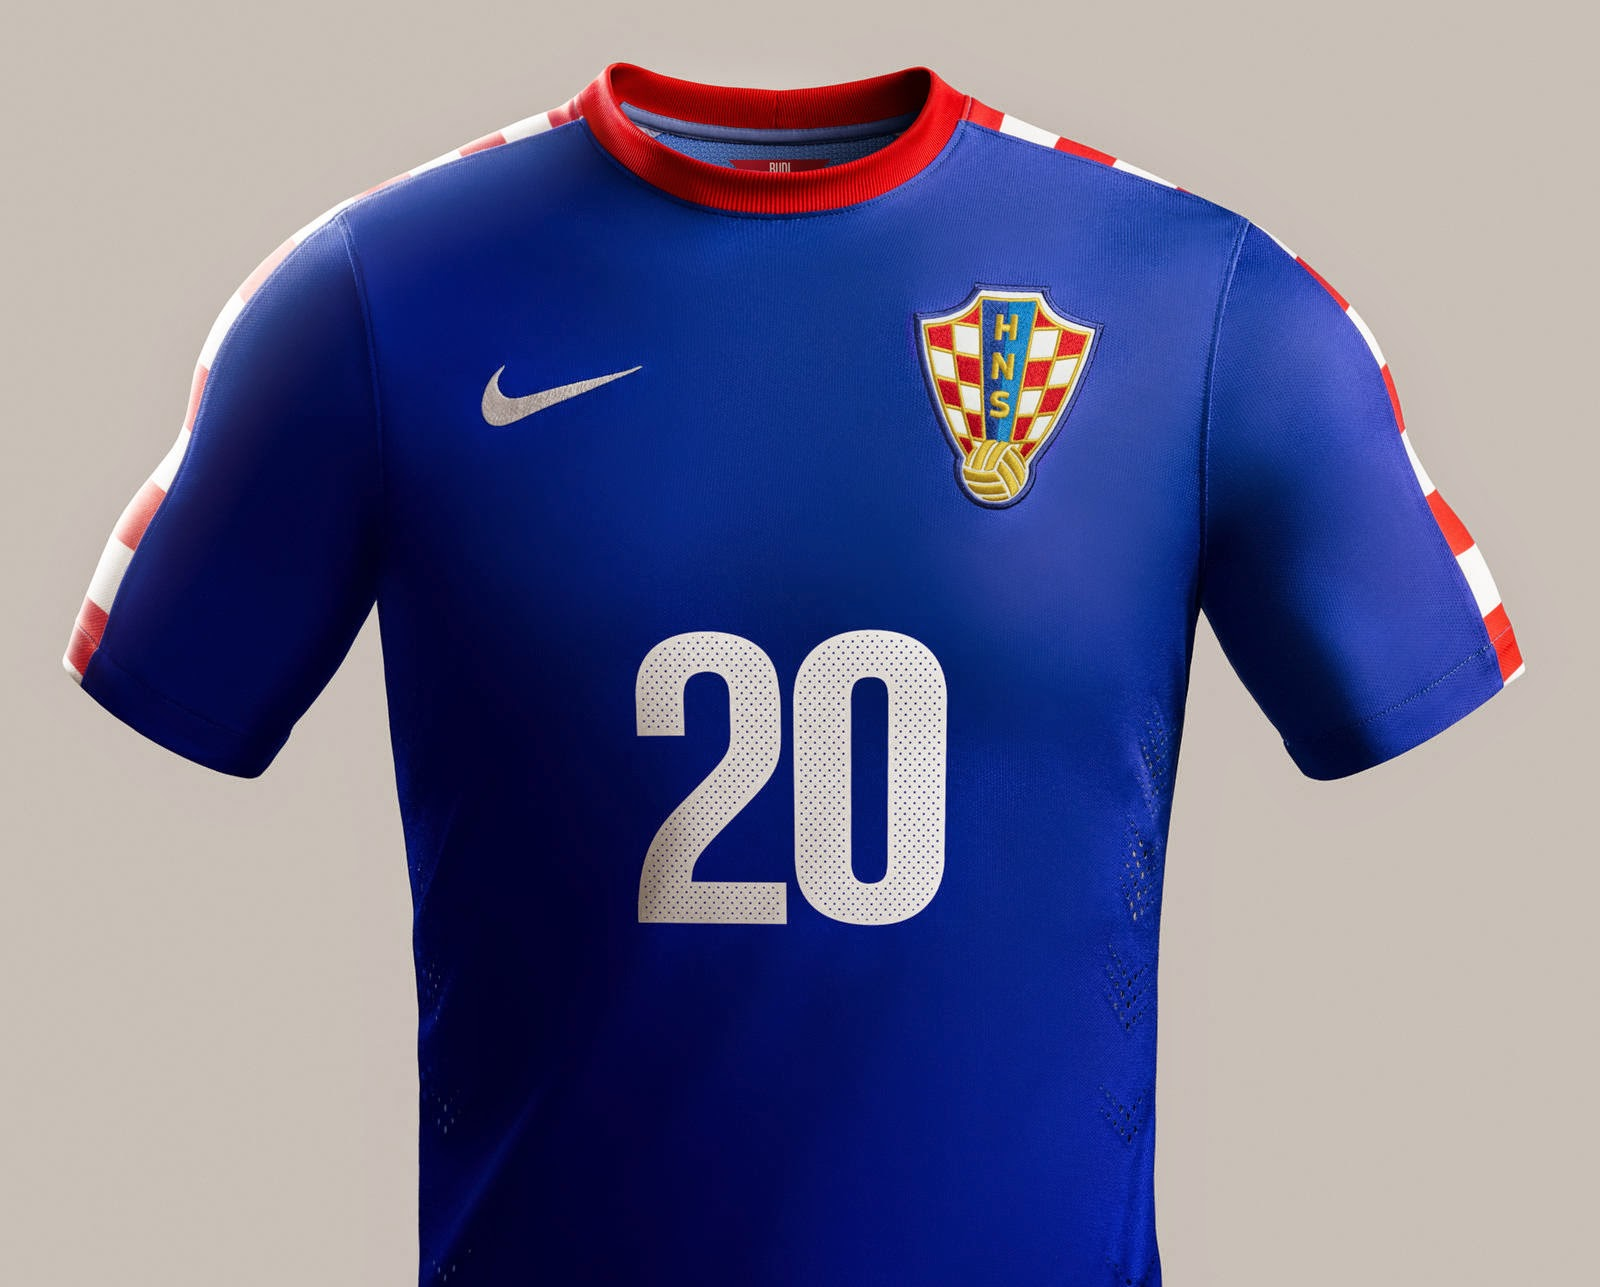 CROATIA JERSEY WORLD CUP 2014 GRED AAA